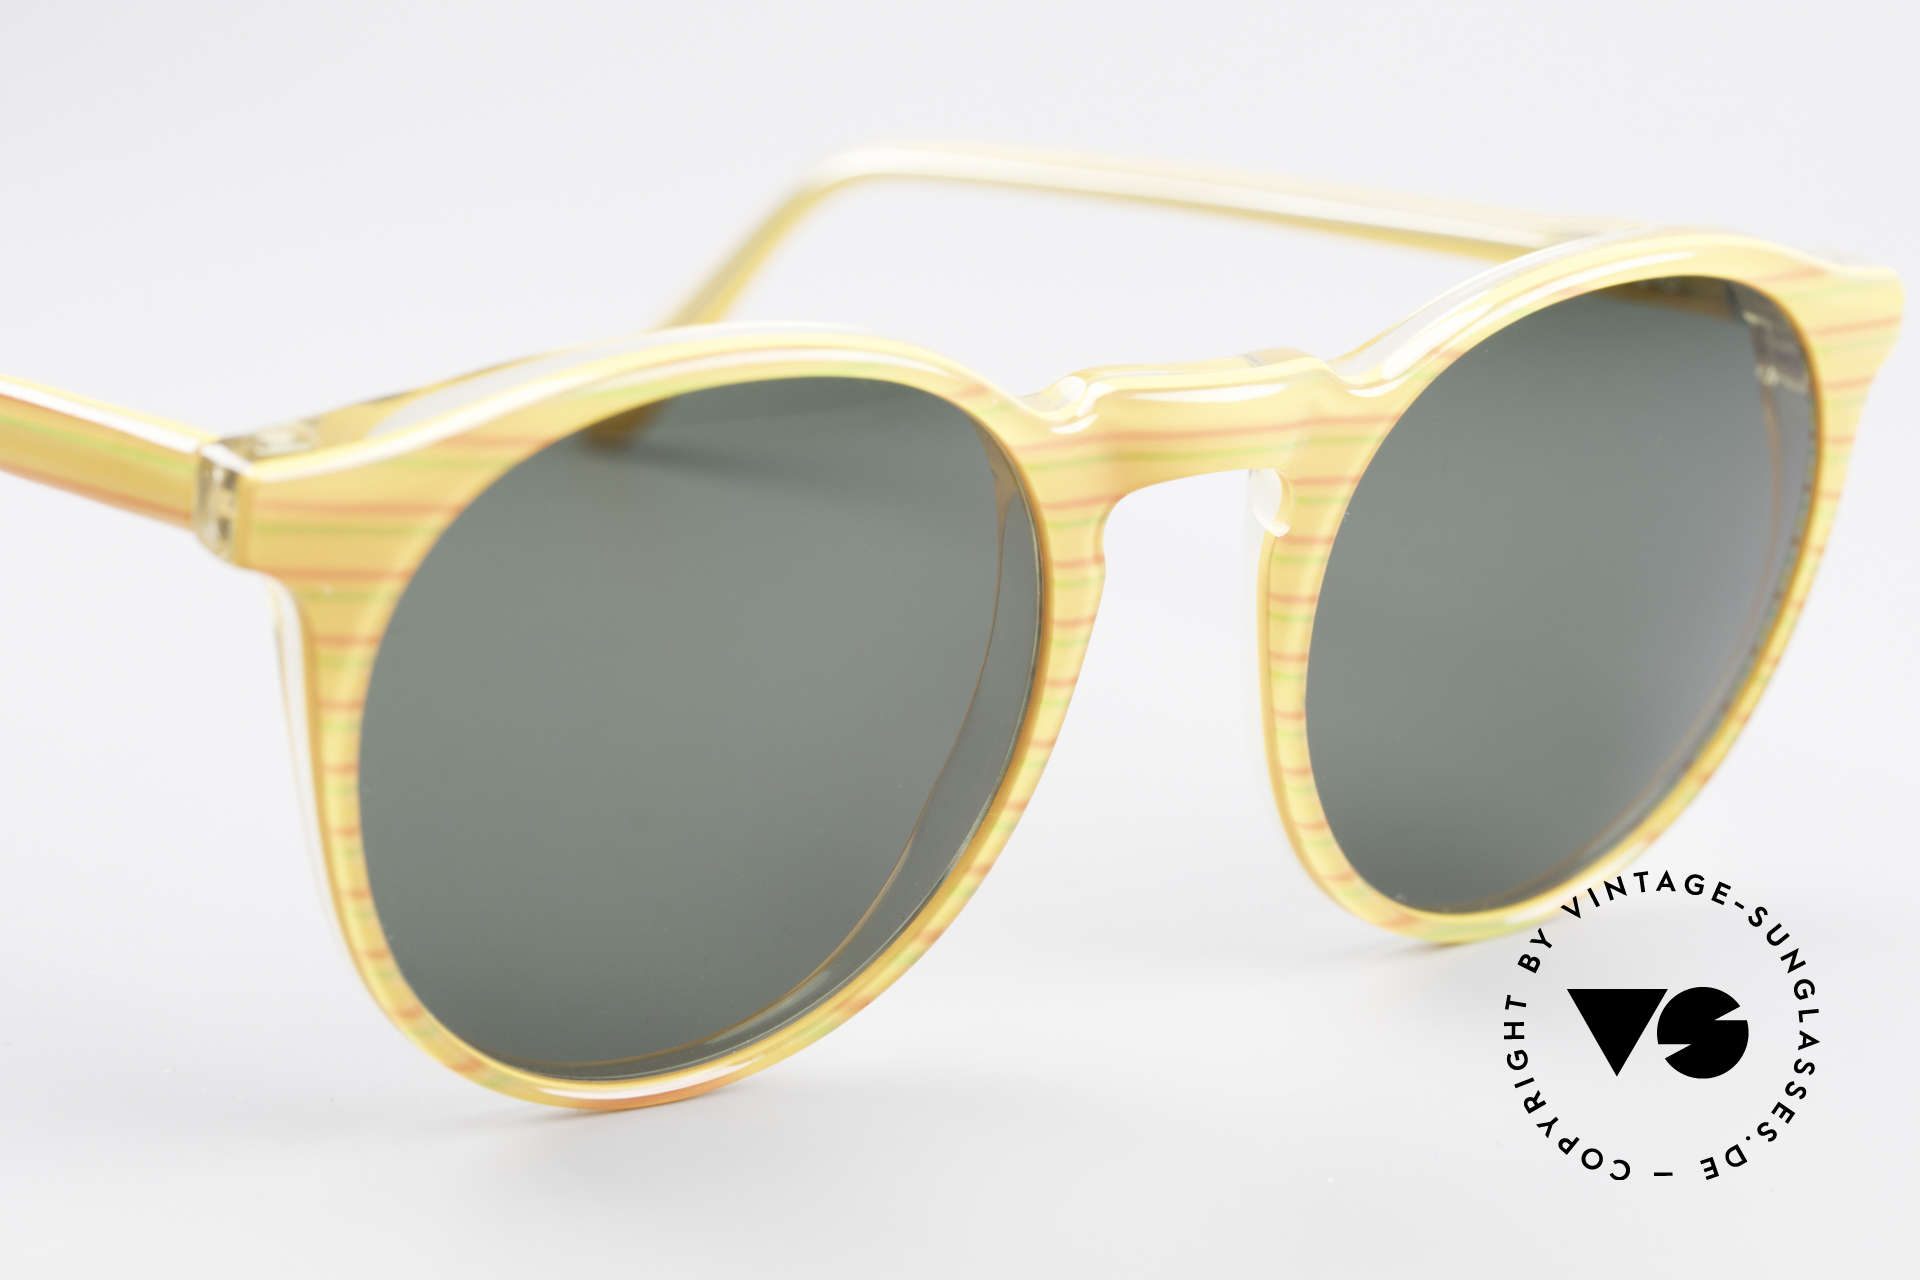 Alain Mikli 034 / 210 Designer Panto Sunglasses, never worn (like all our vintage Alain Mikli specs), Made for Men and Women